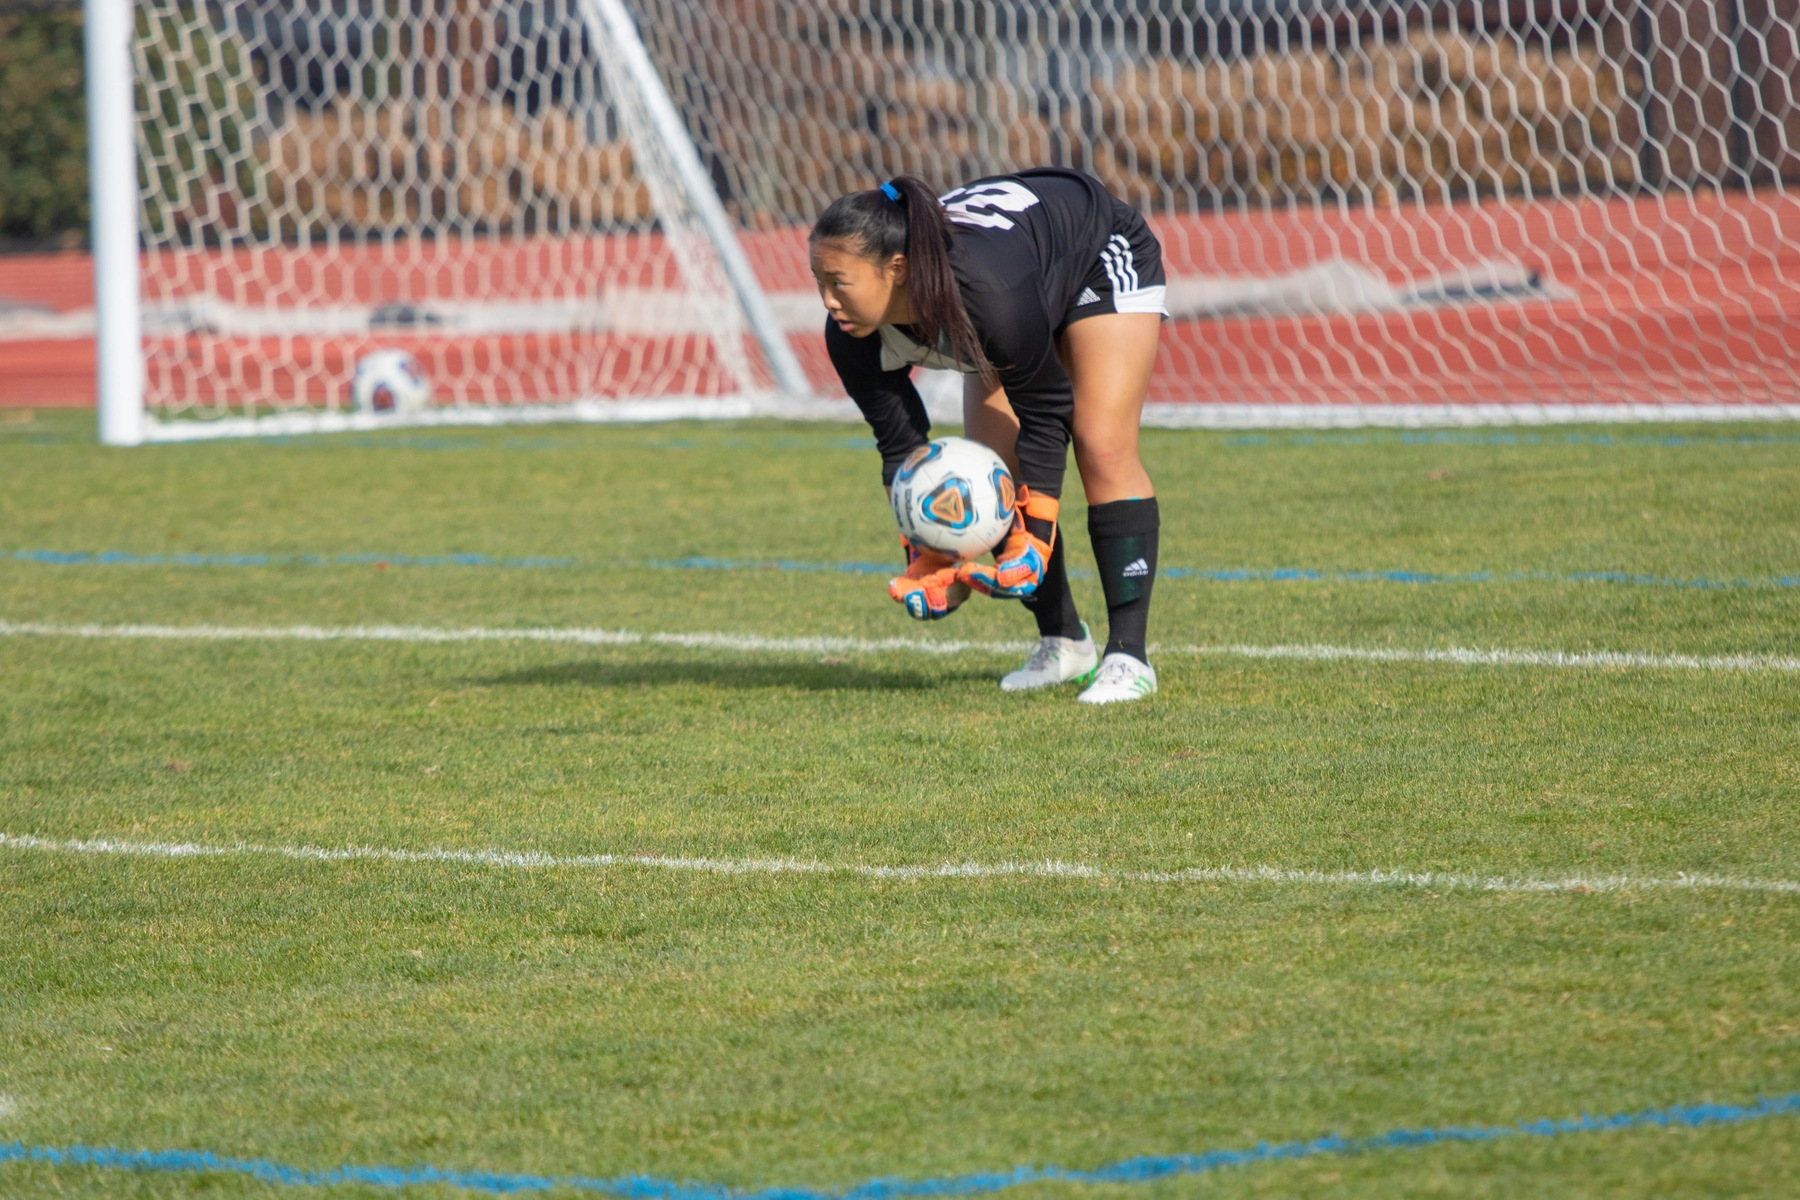 Tome totals eight saves in scoreless tie at Pacific Lutheran